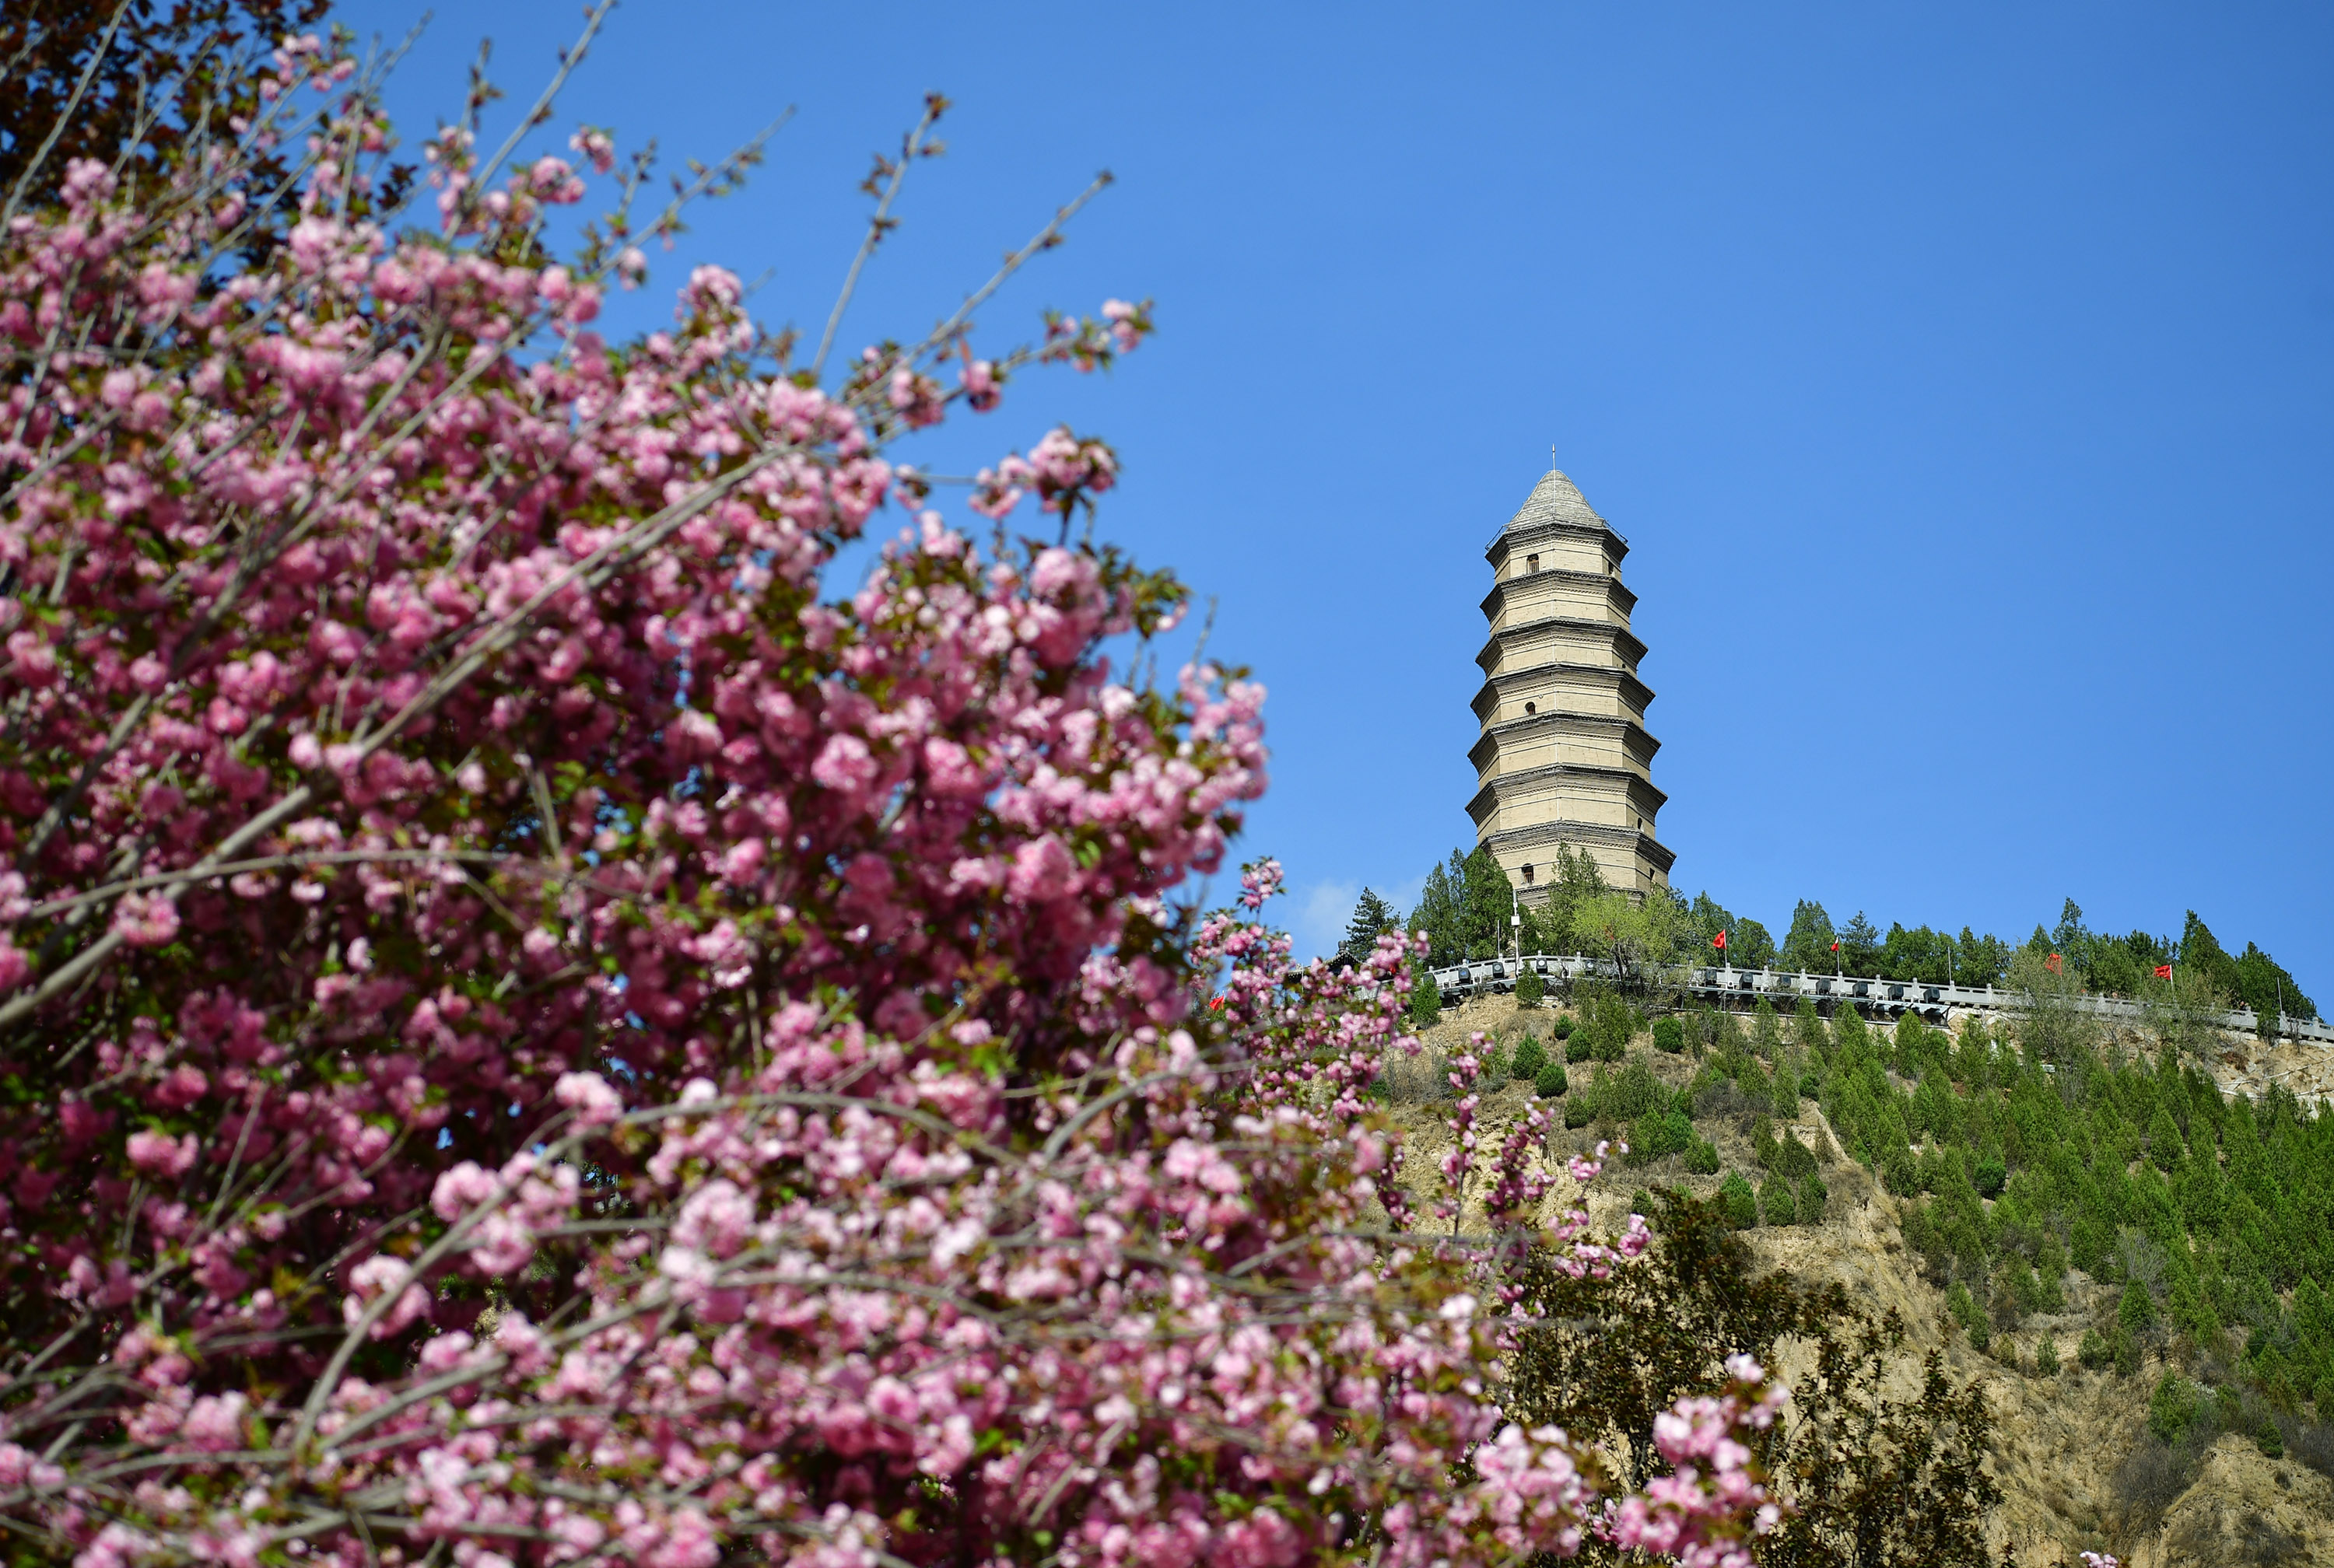 File Photo: The Baota Mountain scenic area is seen with blooming flowers in the foreground in Yan